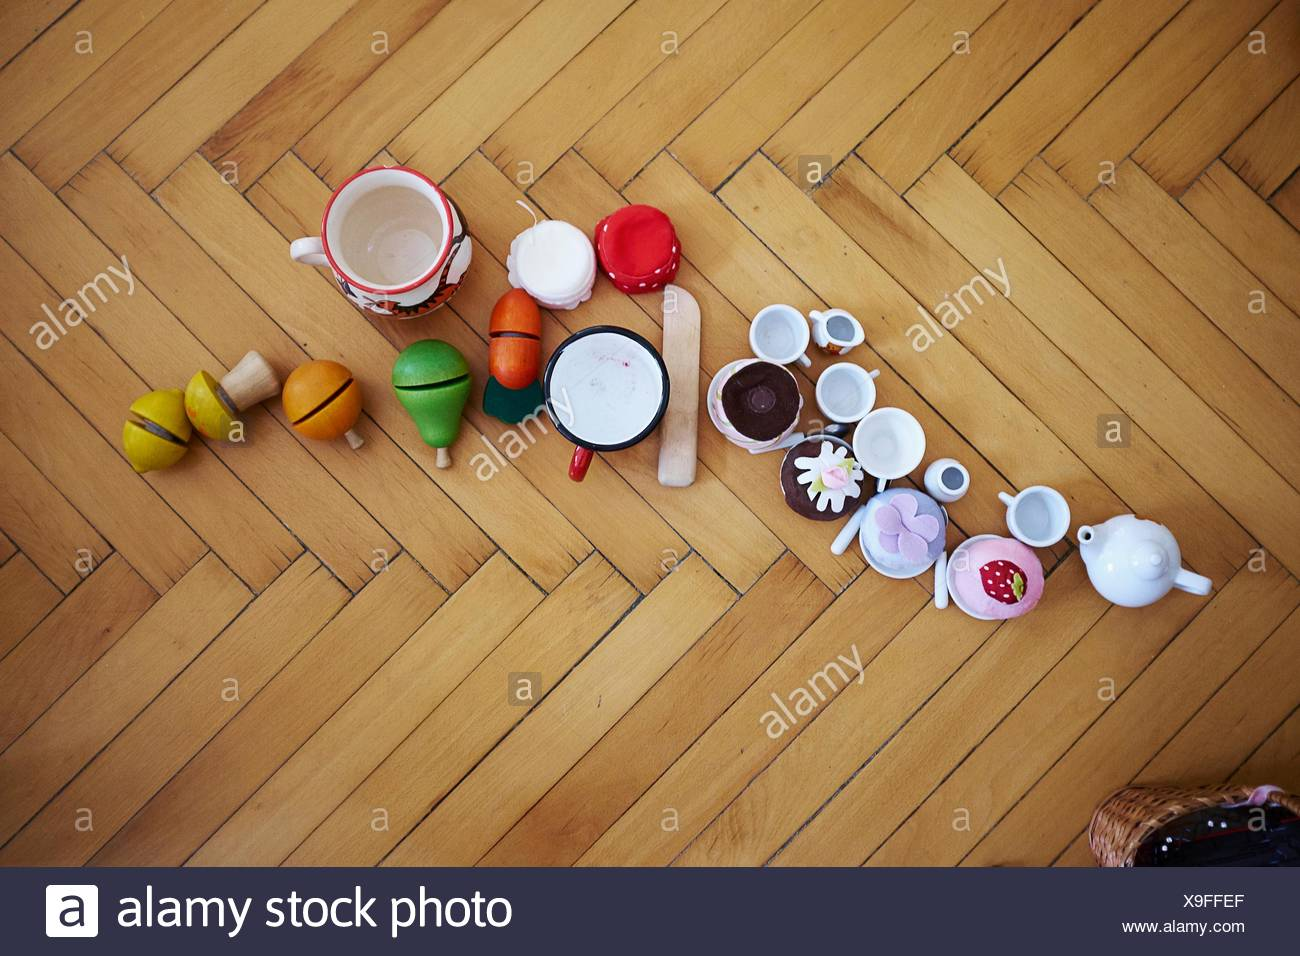 Overhead view of cupcakes, toys and cups on parquet floor - Stock Image